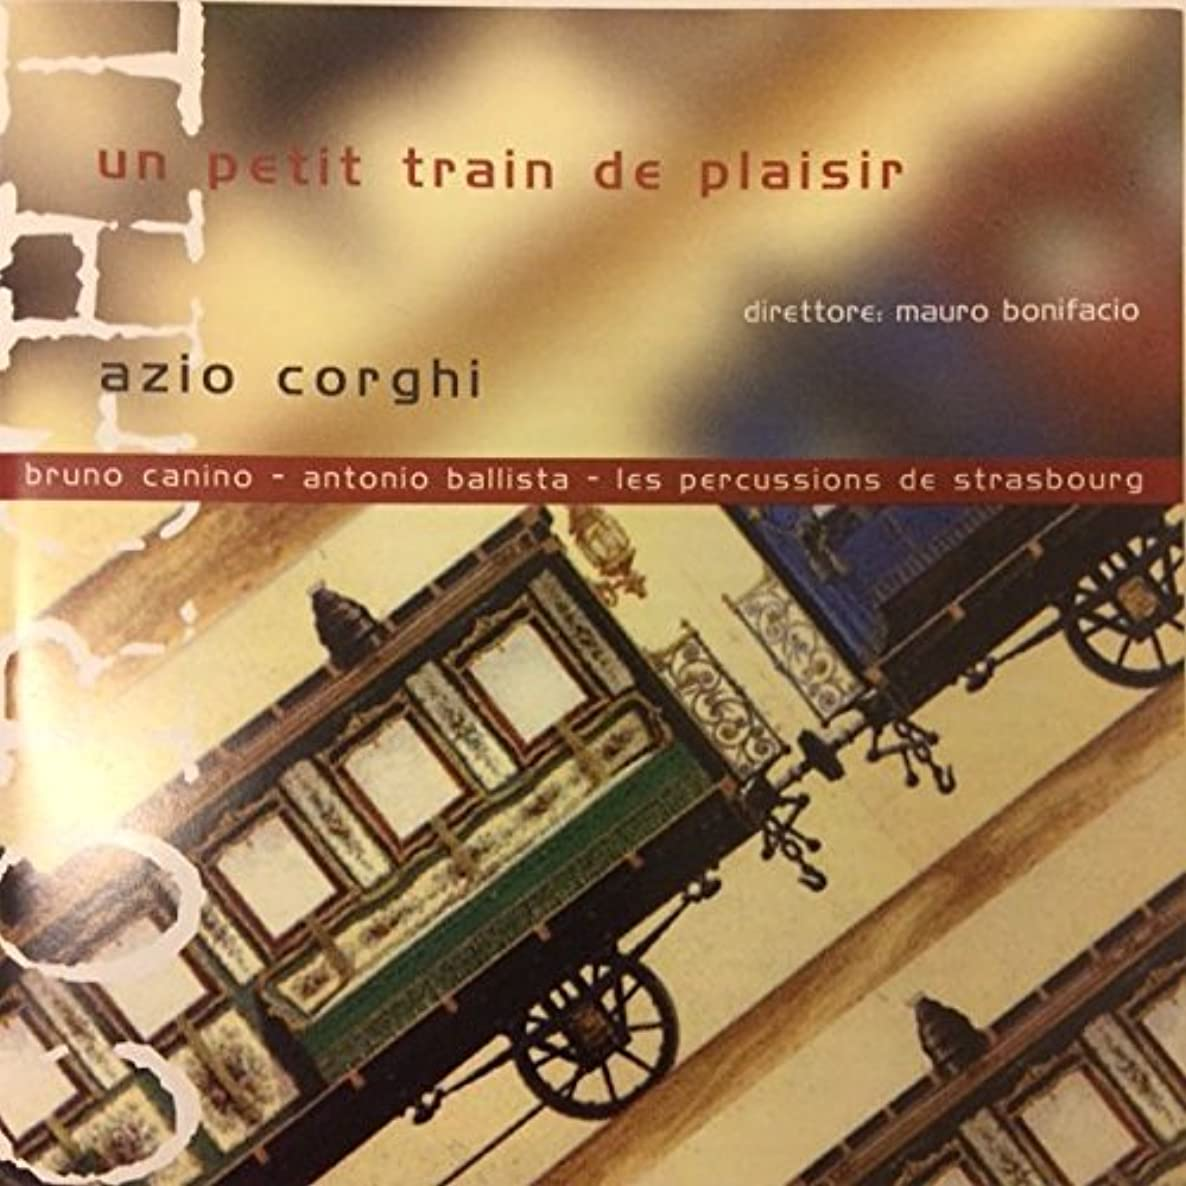 Corghi Azio B.1937: 'Un Petit Train De Plaisir' Ballet For Two Pianos & Perucssion On Music